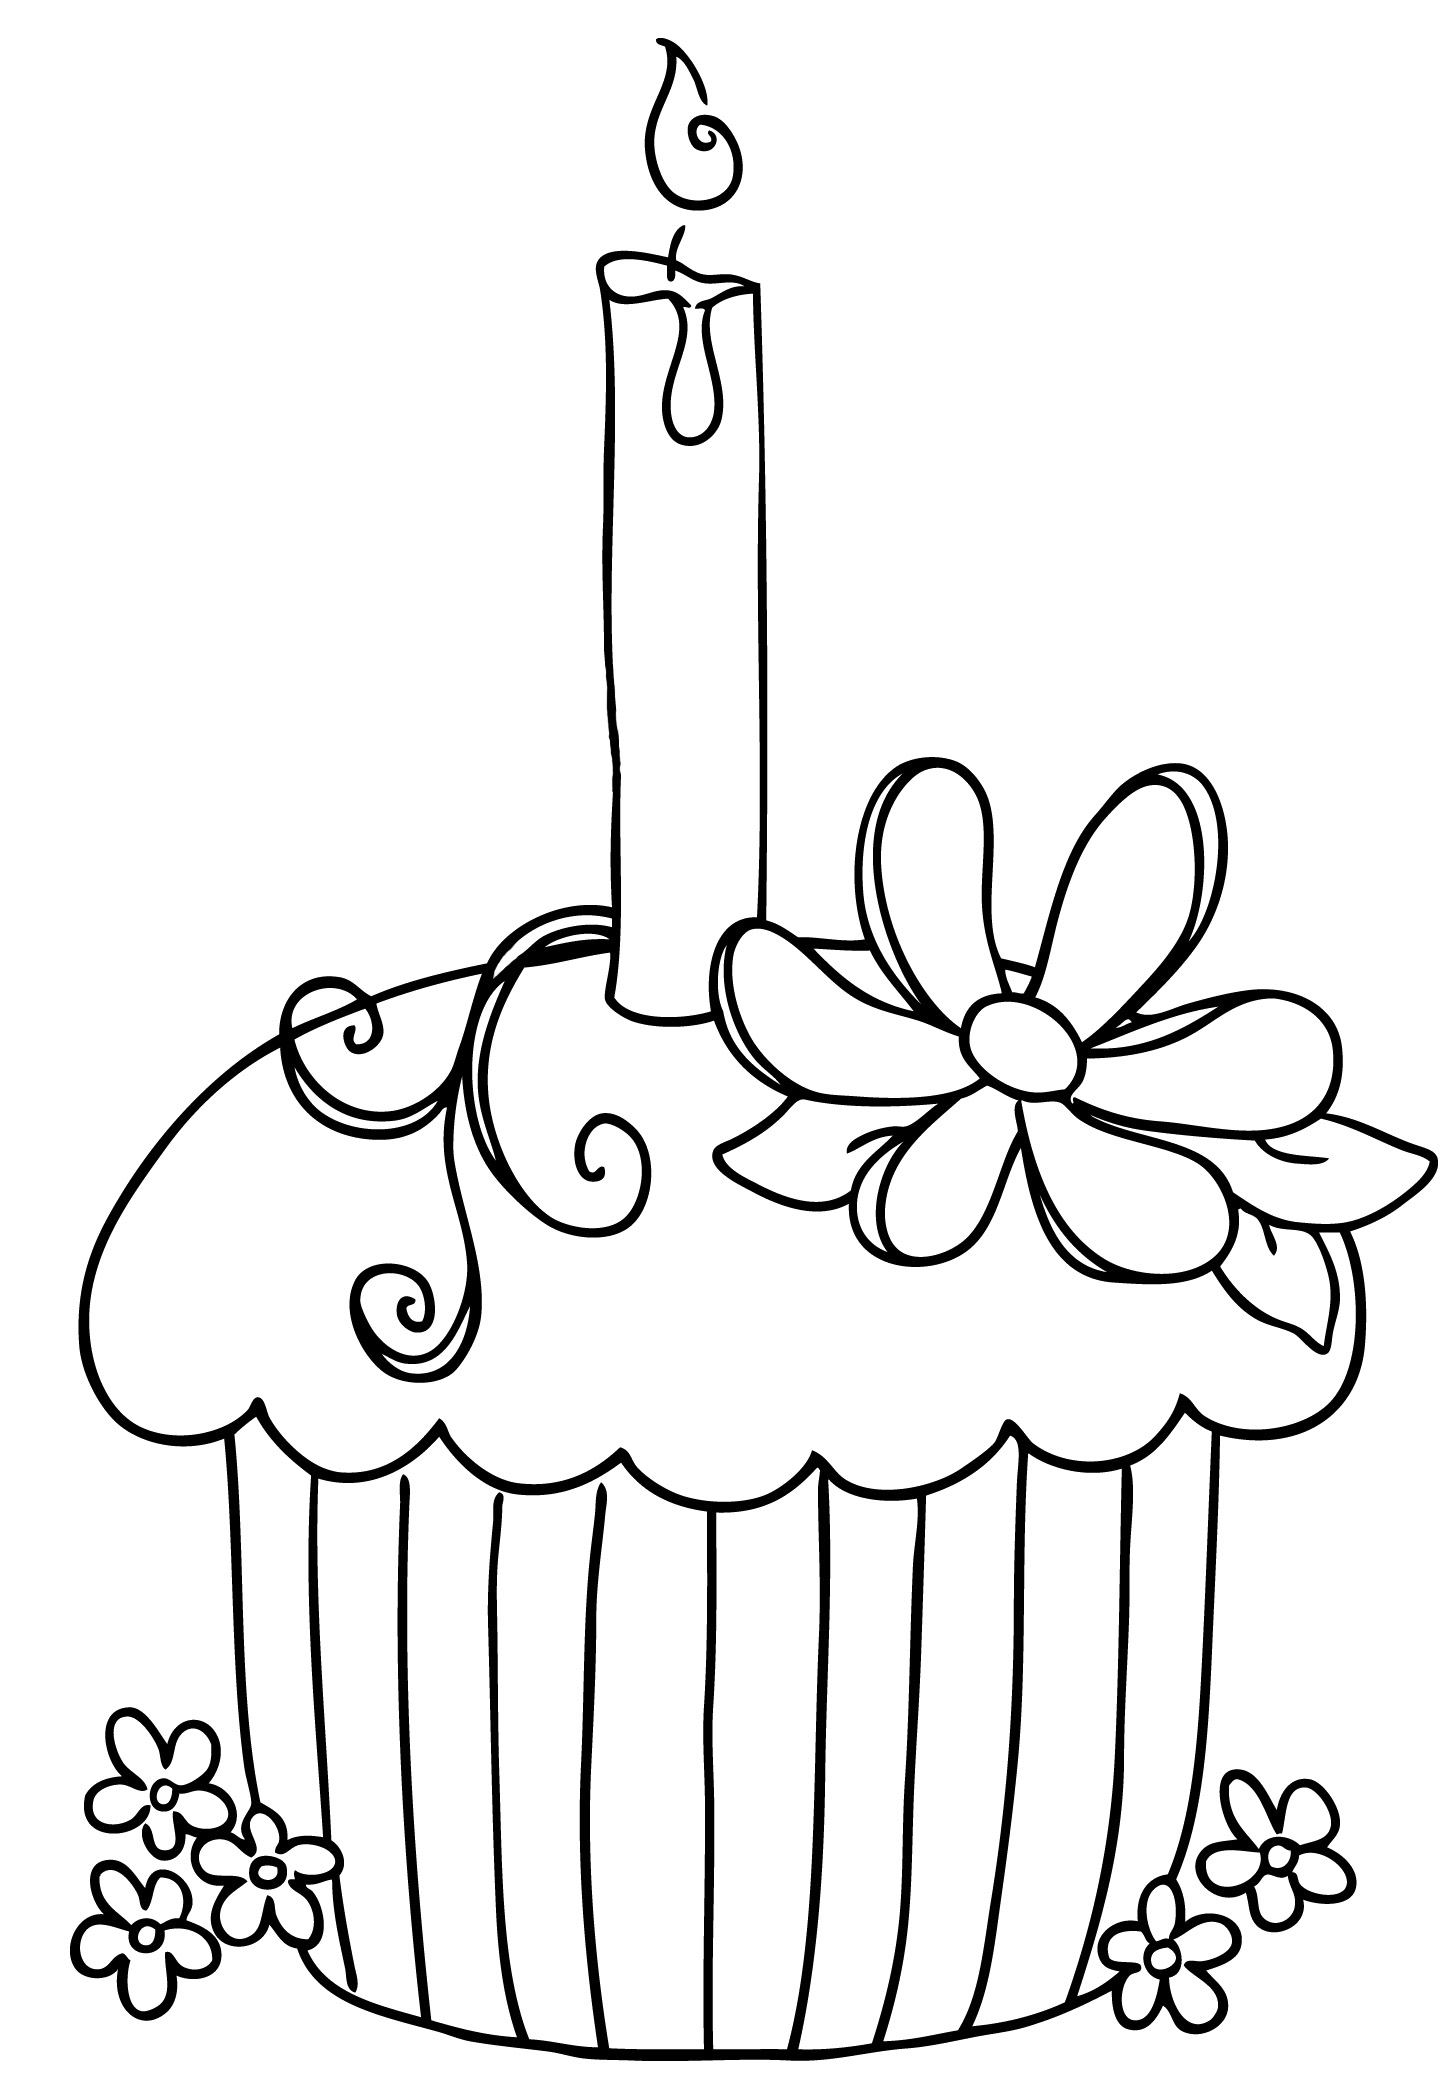 Happy birthday cake clipart black and white picture library library Birthday Clipart Black And White & Birthday Black And White Clip ... picture library library